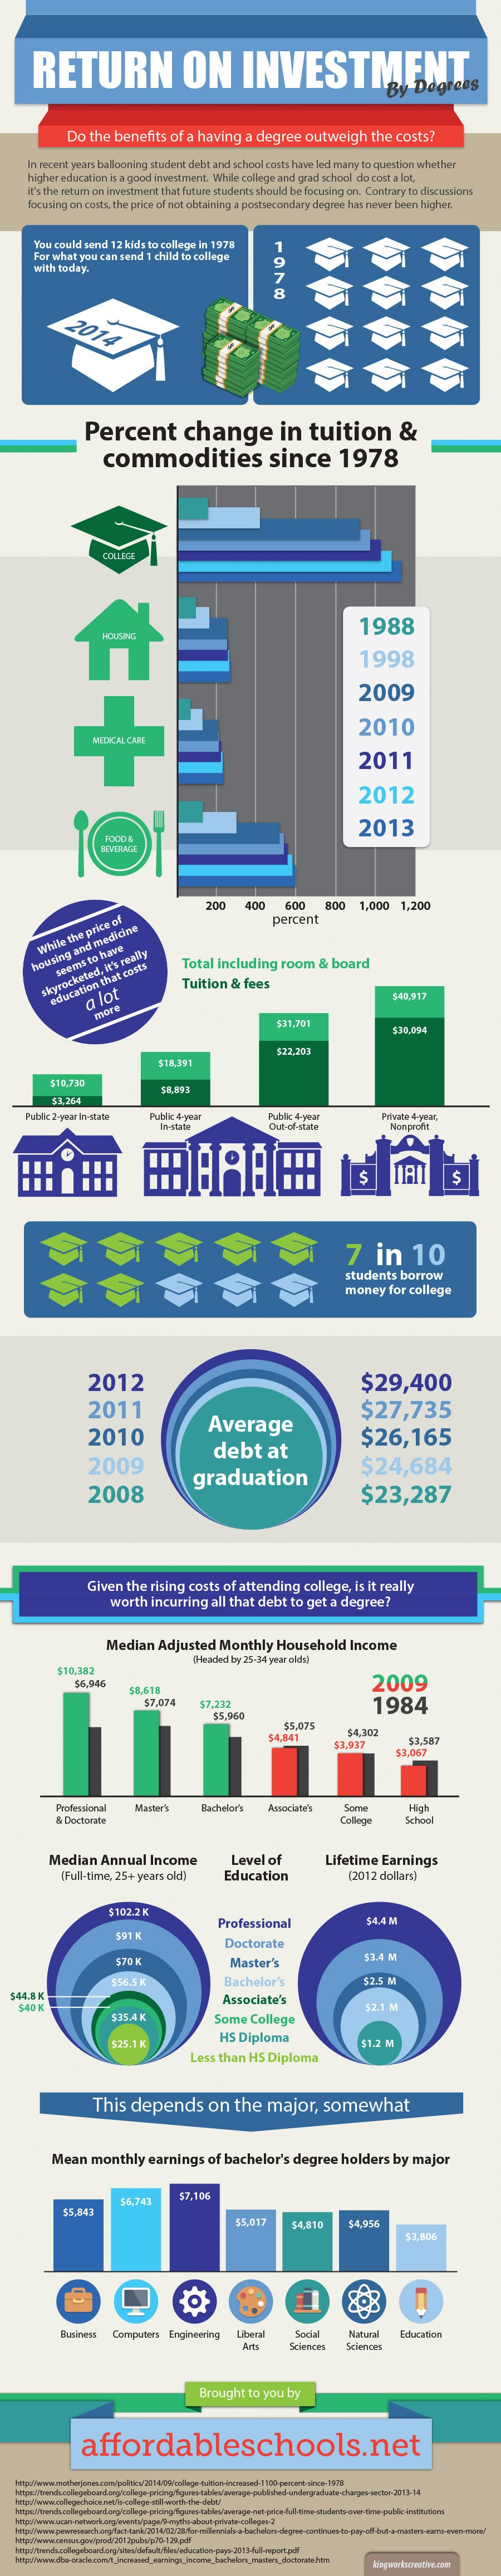 Higher Education ROI